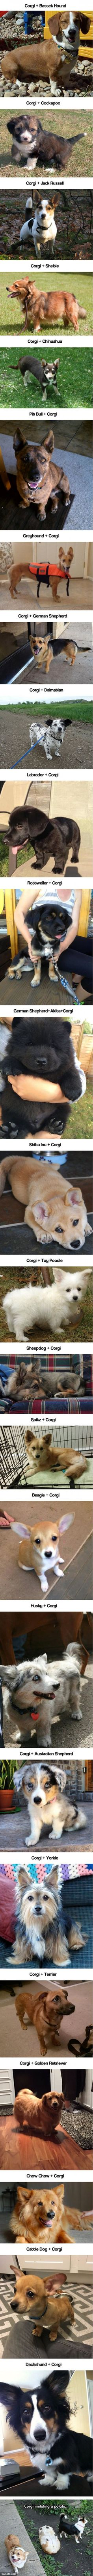 26 Corgeous Corgi Mixes That Are Fluffily Bootiful<<<< THEYRE ALL SO ADORABLE<3